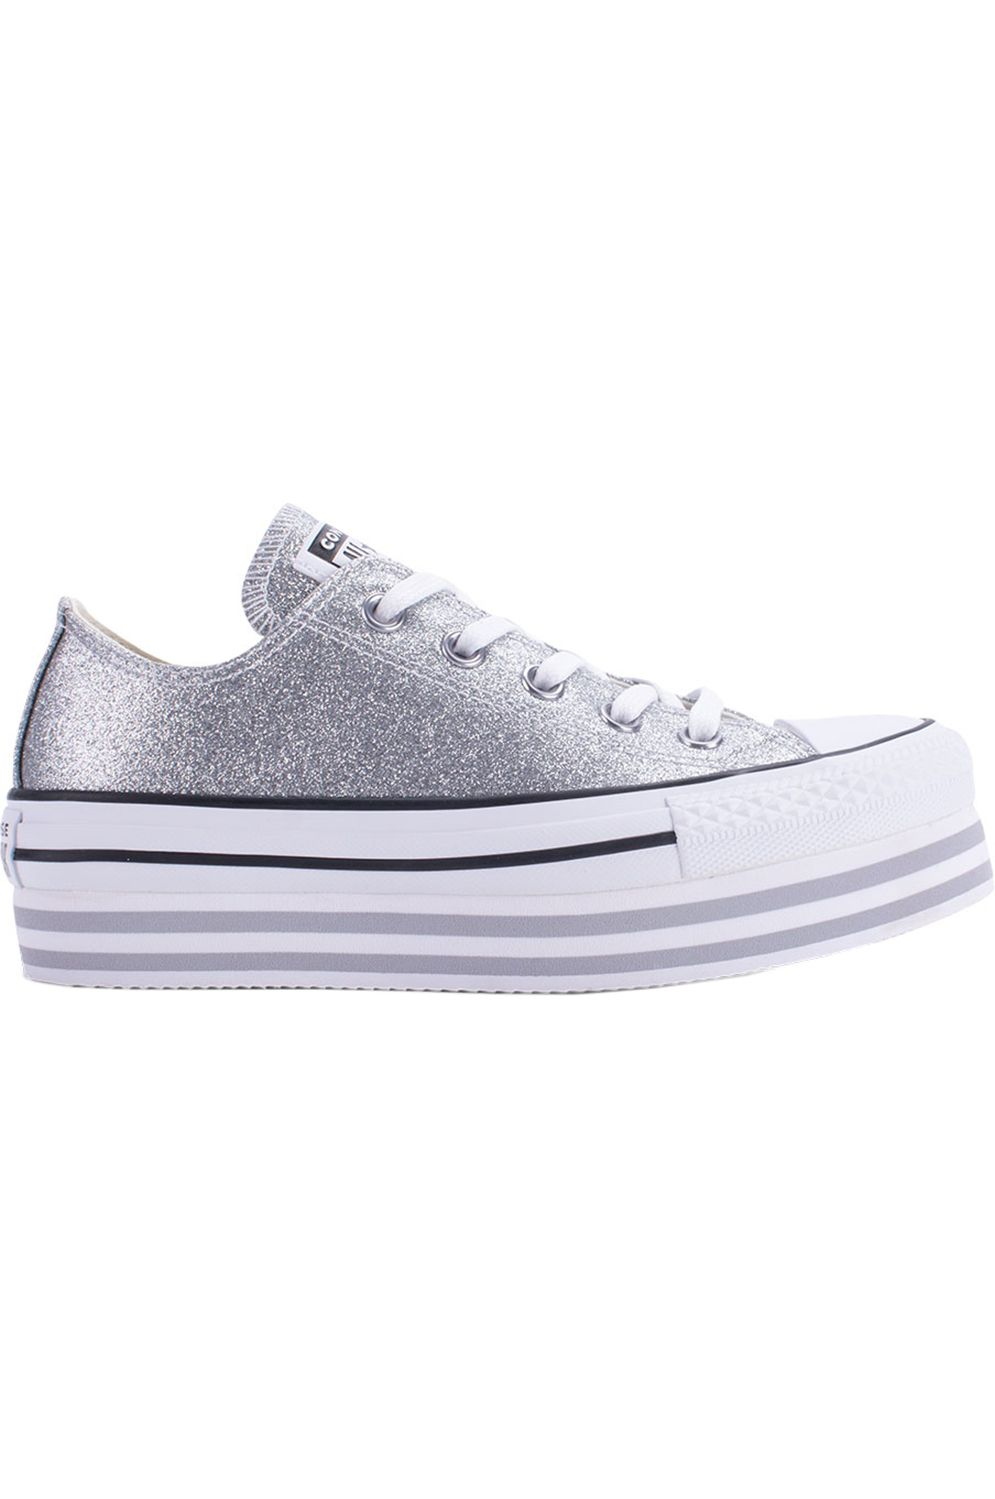 Tenis Converse CHUCK TAYLOR ALL STAR PLATFORM LAYER OX Silver/Wolf Grey/White